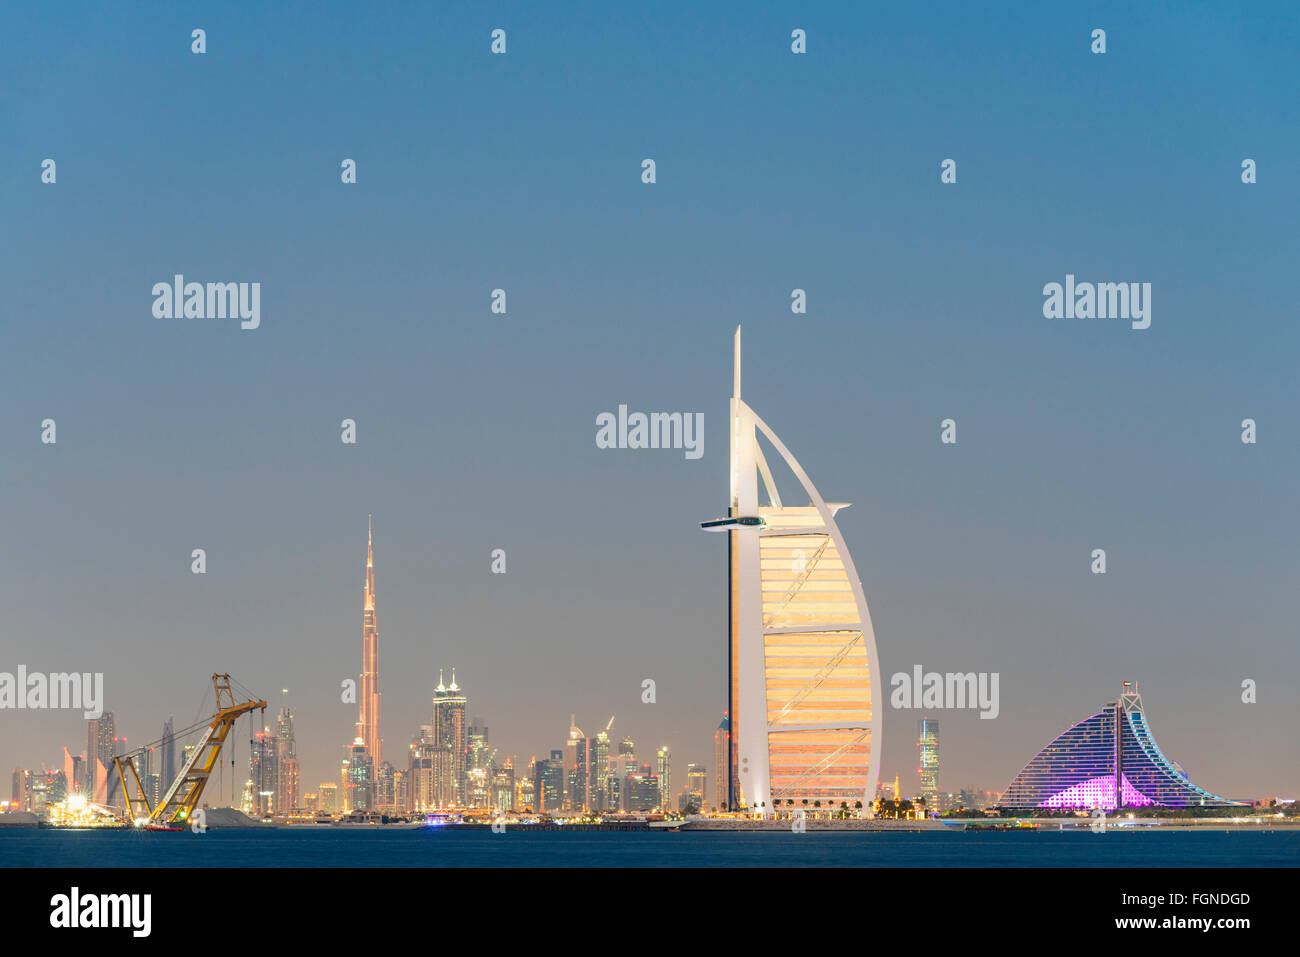 Skyline at night of Dubai waterfront with Burj al Arab Hotel in United Arab Emirates - Stock Image